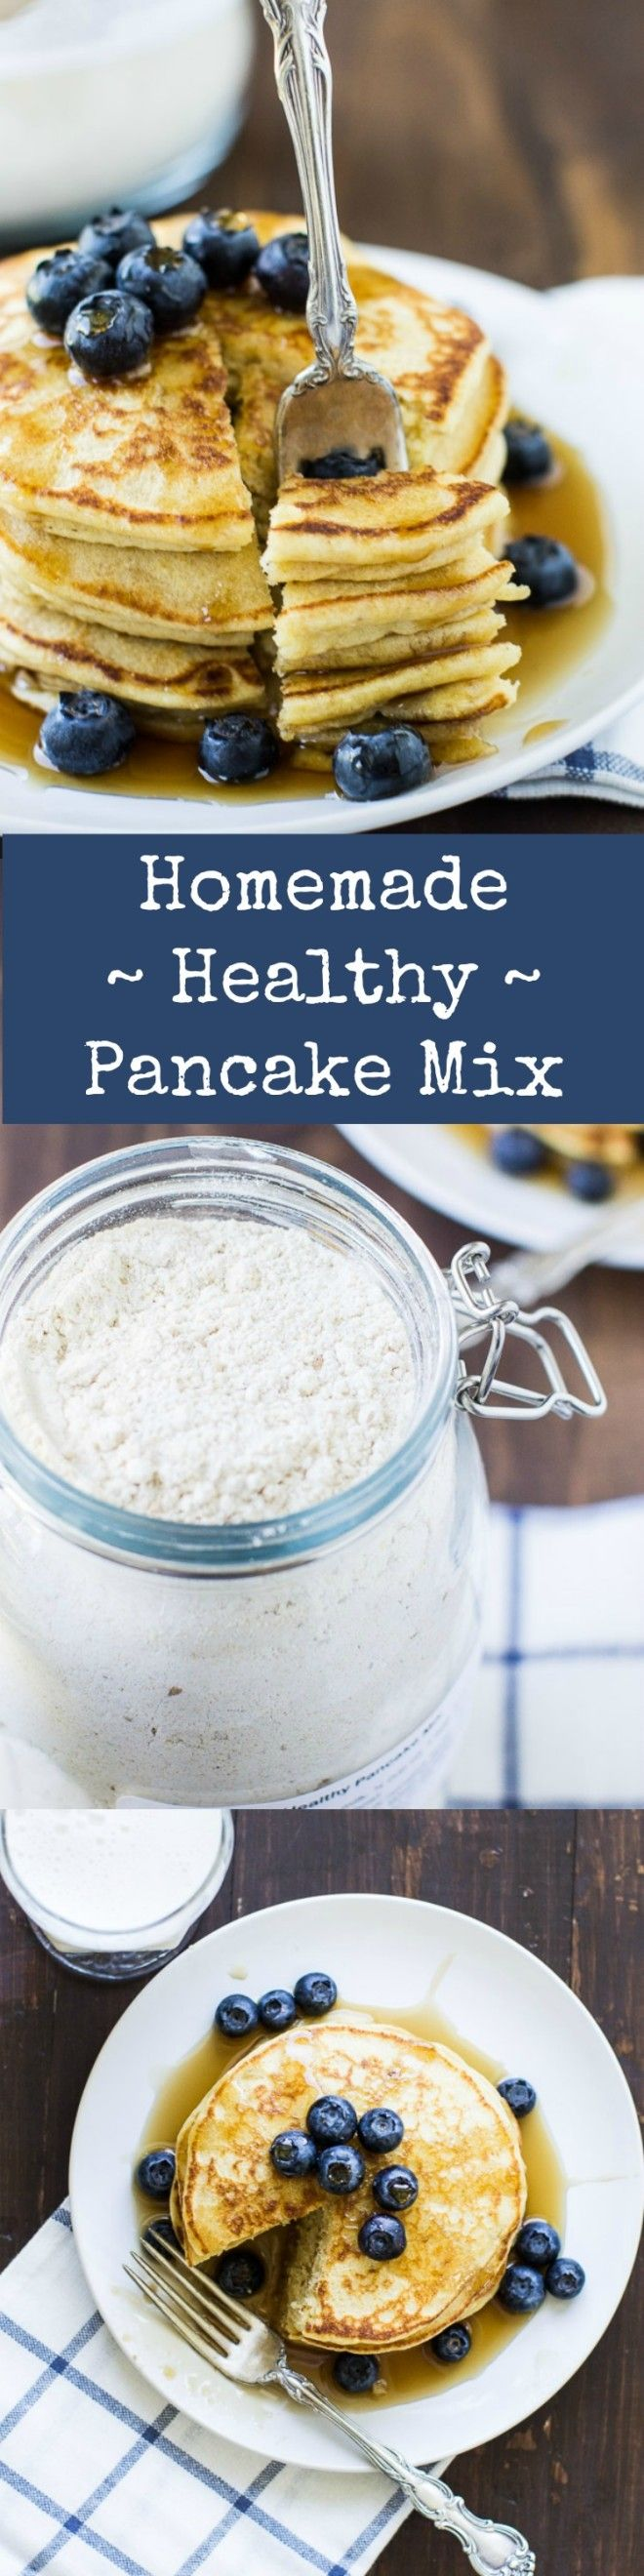 Customize your own blend of homemade Healthy Pancake Mix with this tried-and-true recipe. So quick and easy, you'll never go back to store-bought again!